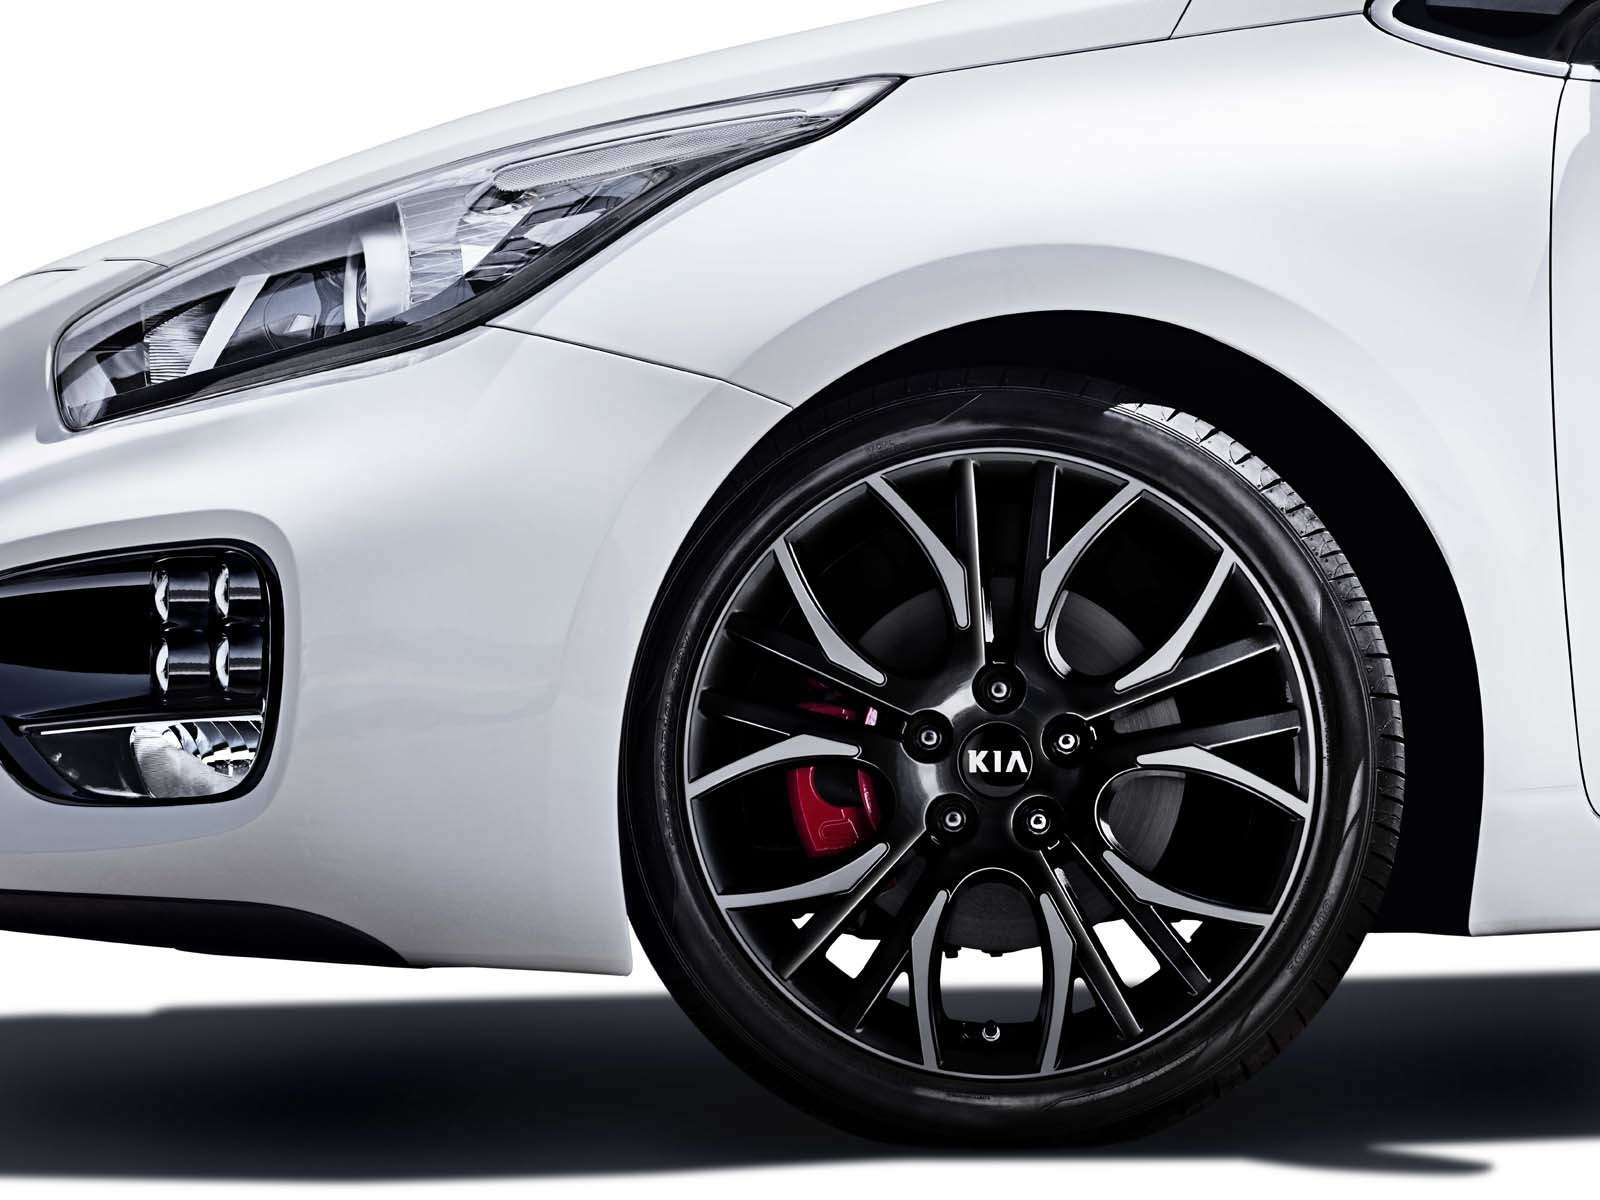 kia_pro_ceed_gt_my14_1st_edition_-_front_side_view_-_detail_4157_18024